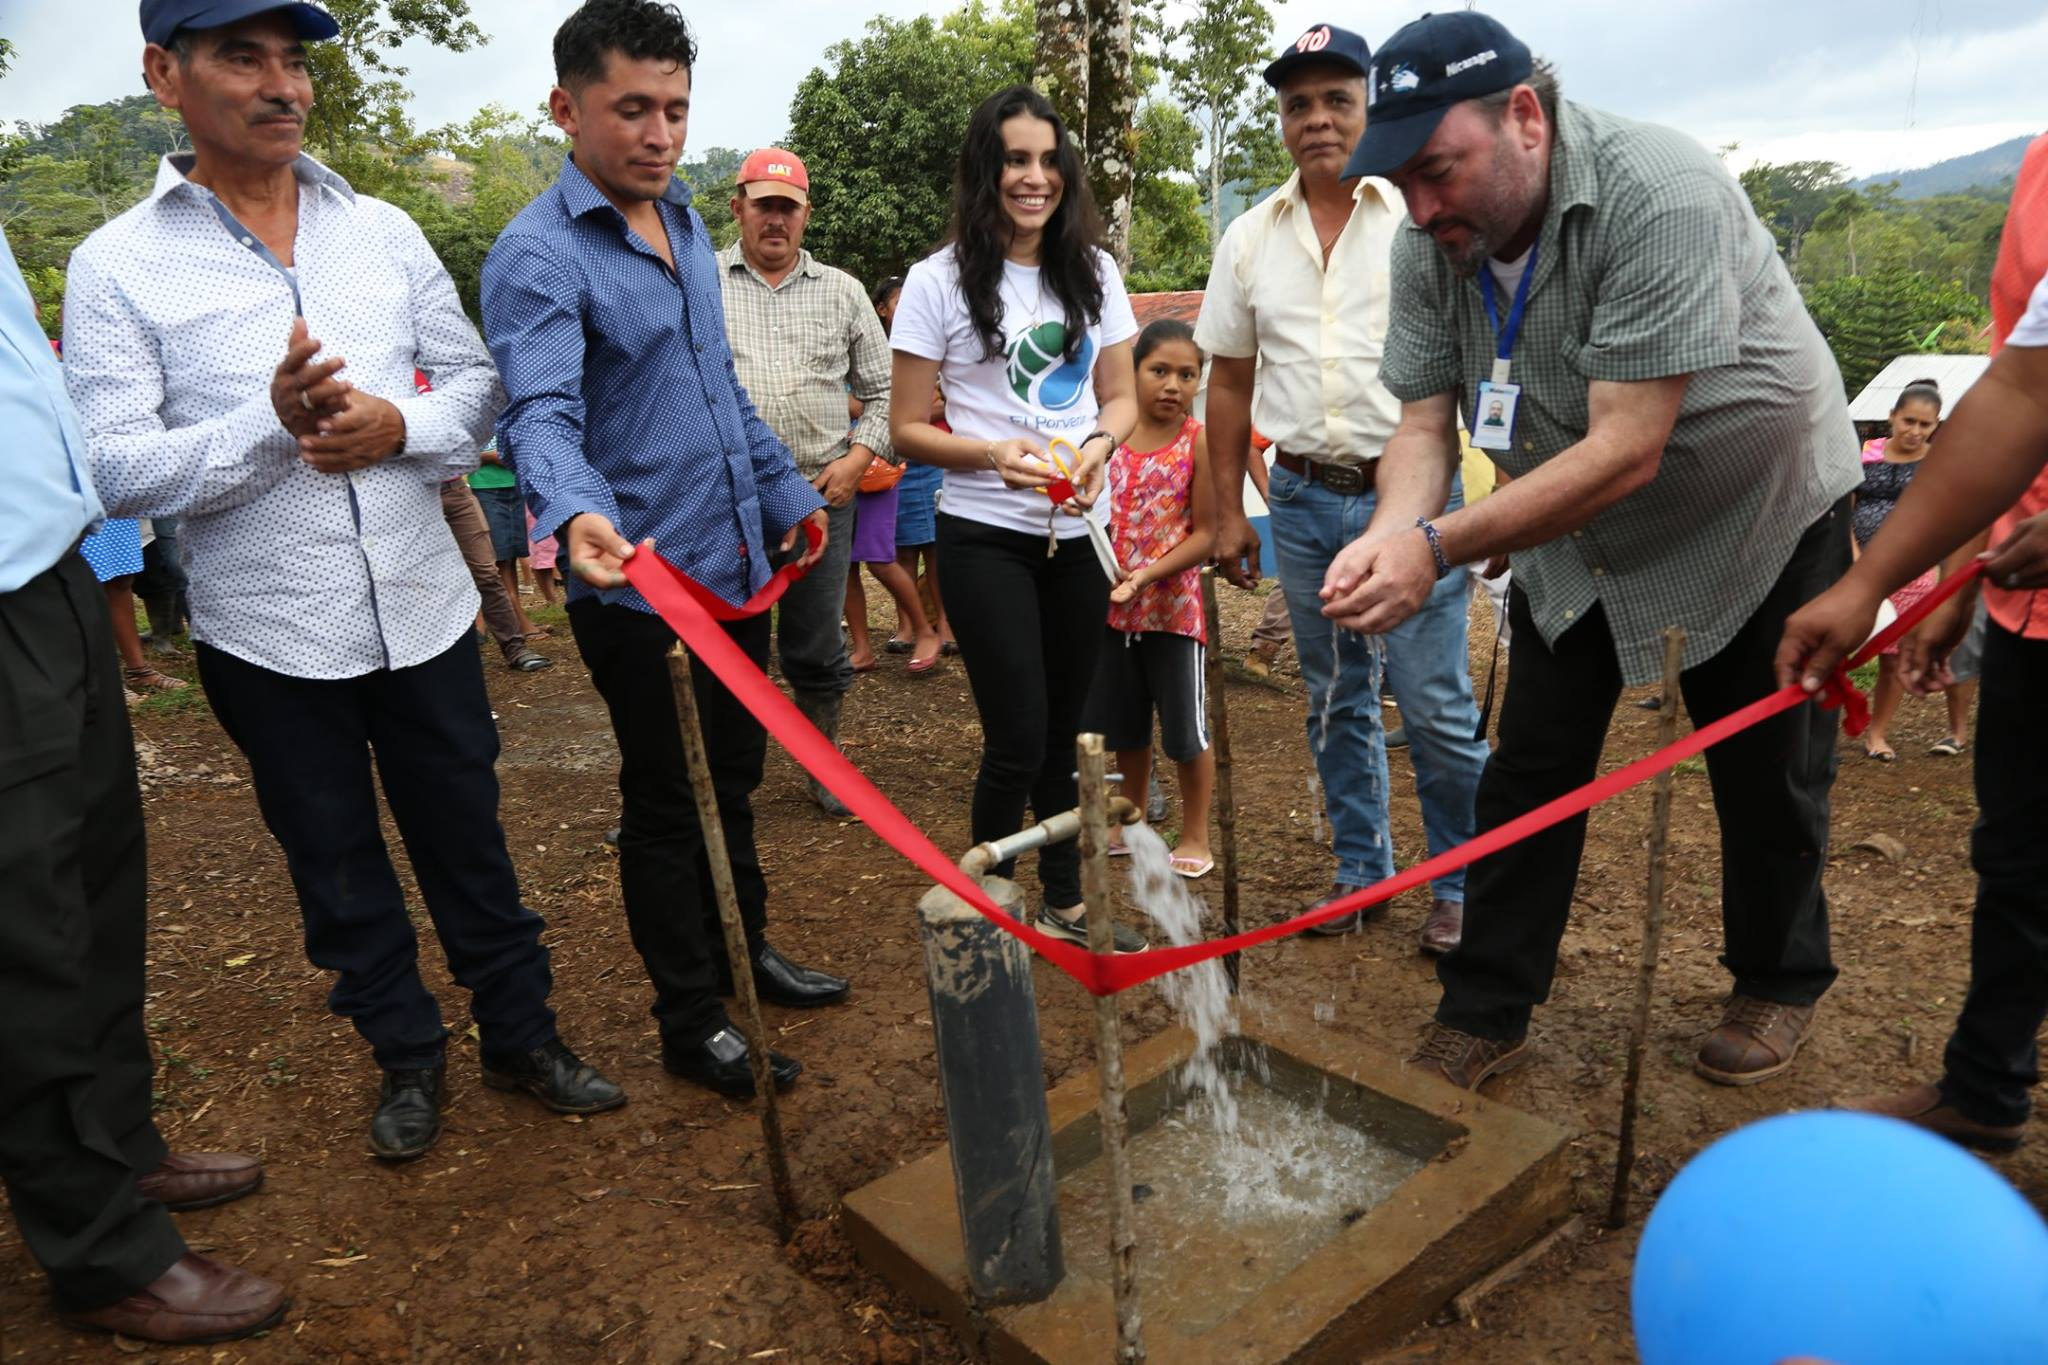 Inauguration of a water project in Nicaragua; staff cut the ribbon.